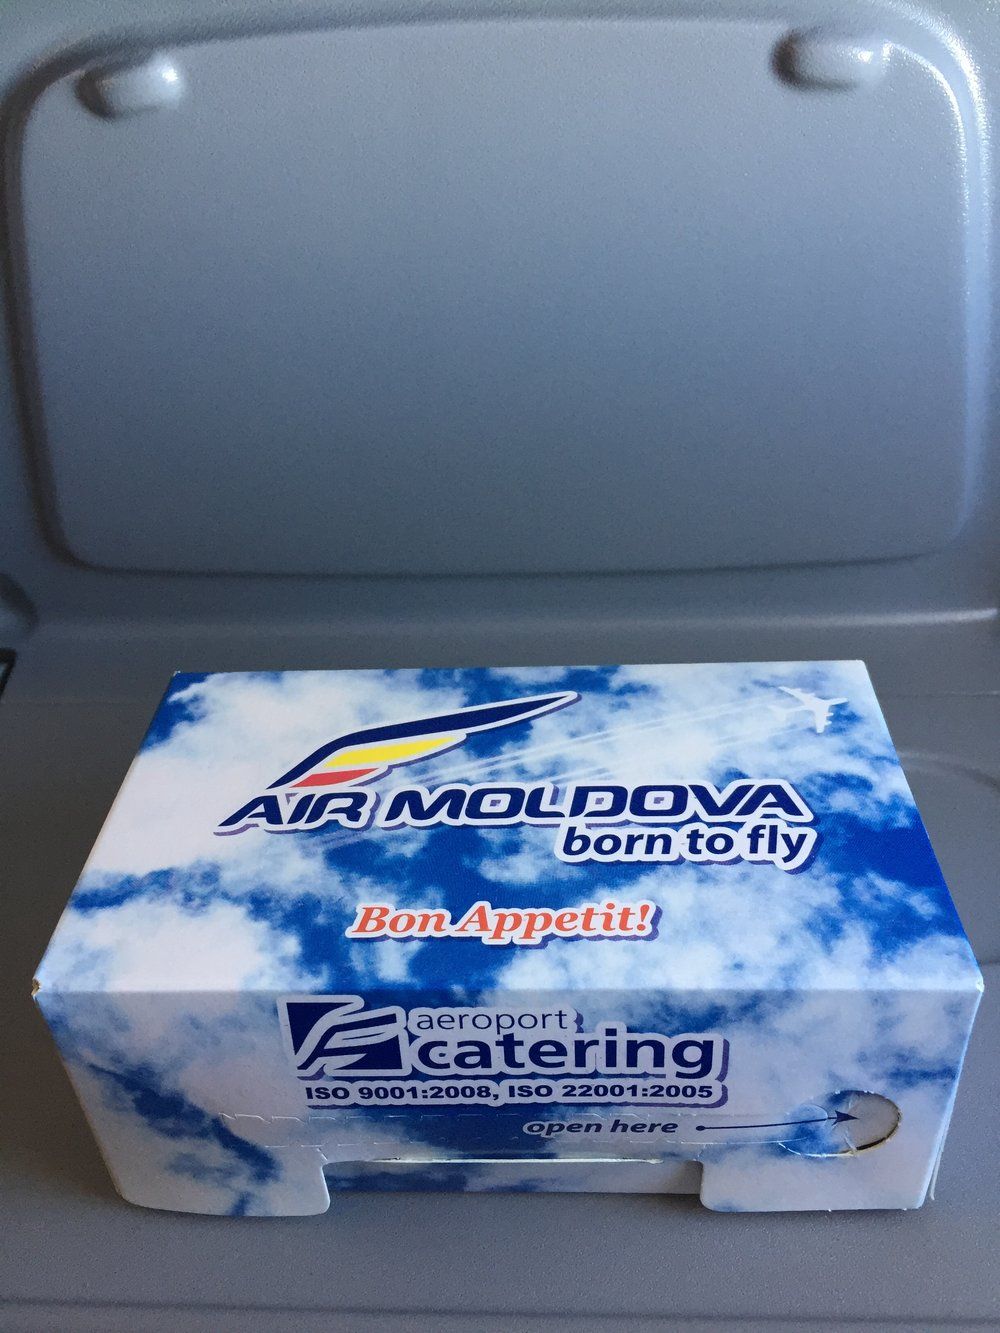 air moldova food.JPG